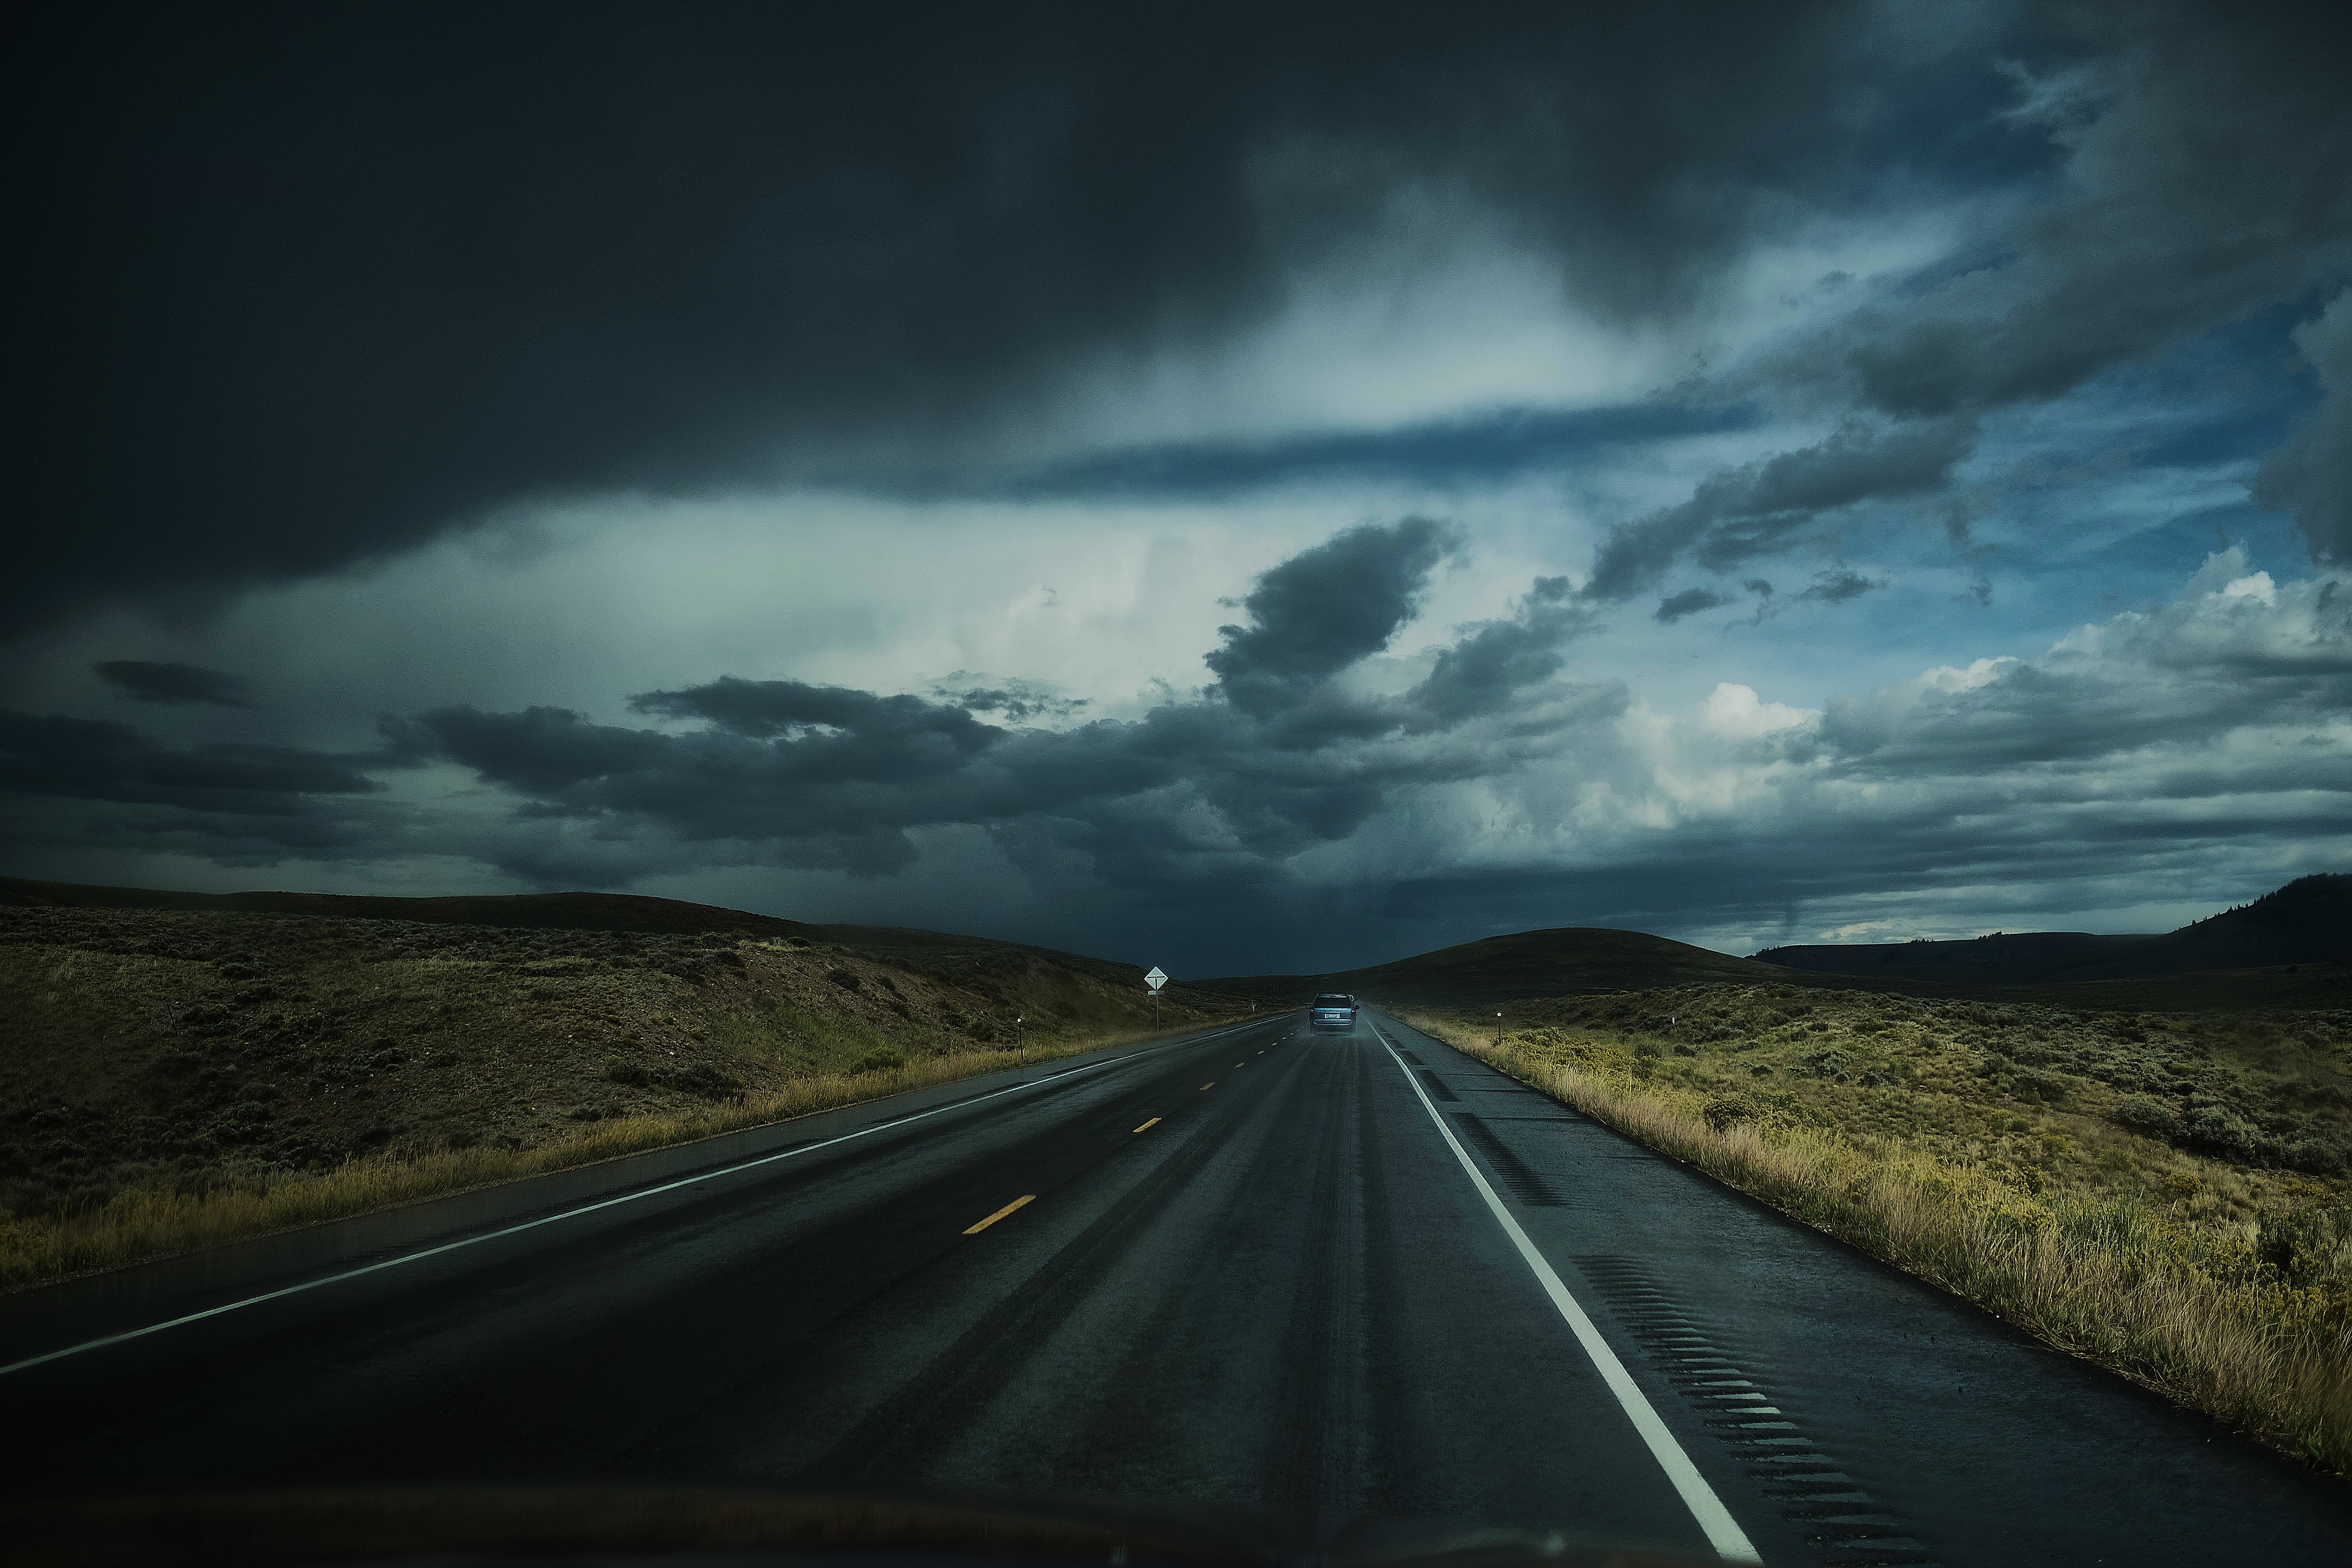 115774 download wallpaper Nature, Road, Clouds, Auto, Traffic, Movement screensavers and pictures for free